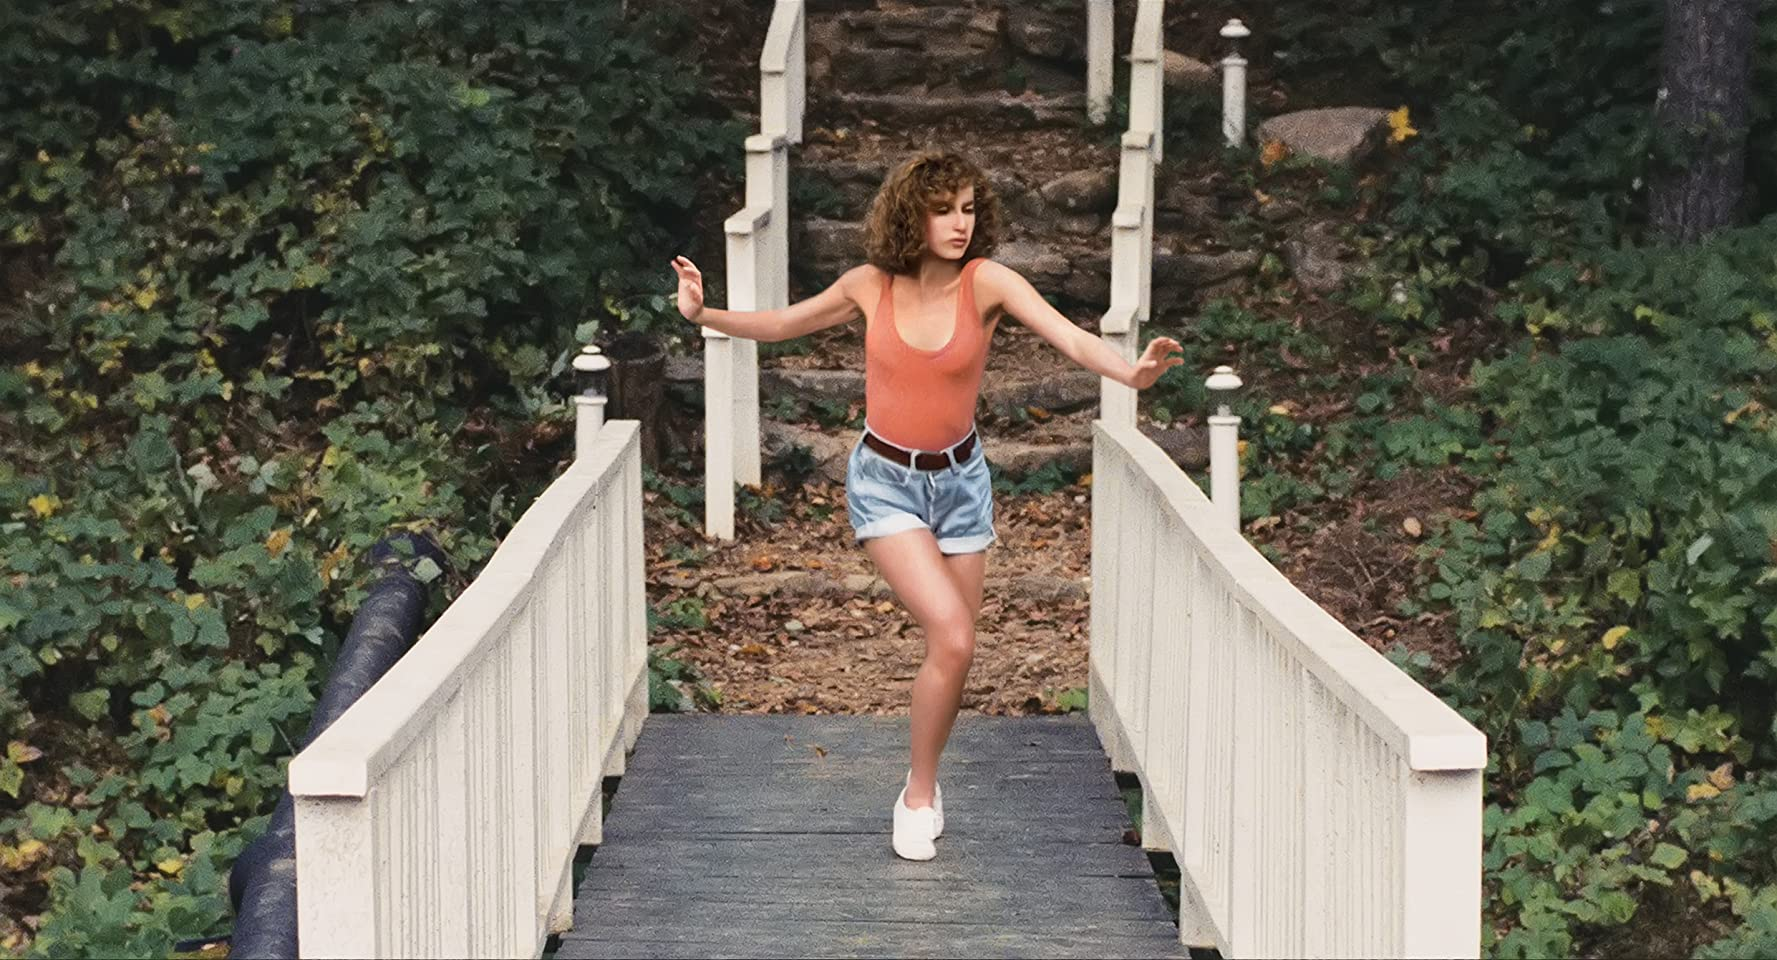 Jennifer Grey in Dirty Dancing (1987). Baby, a young white woman with very curly brown hair, is dancing her way along a small wooden bridge amongst the foliage. She is wearing a salmon coloured vest, blue denim shorts, and white plimsolls.